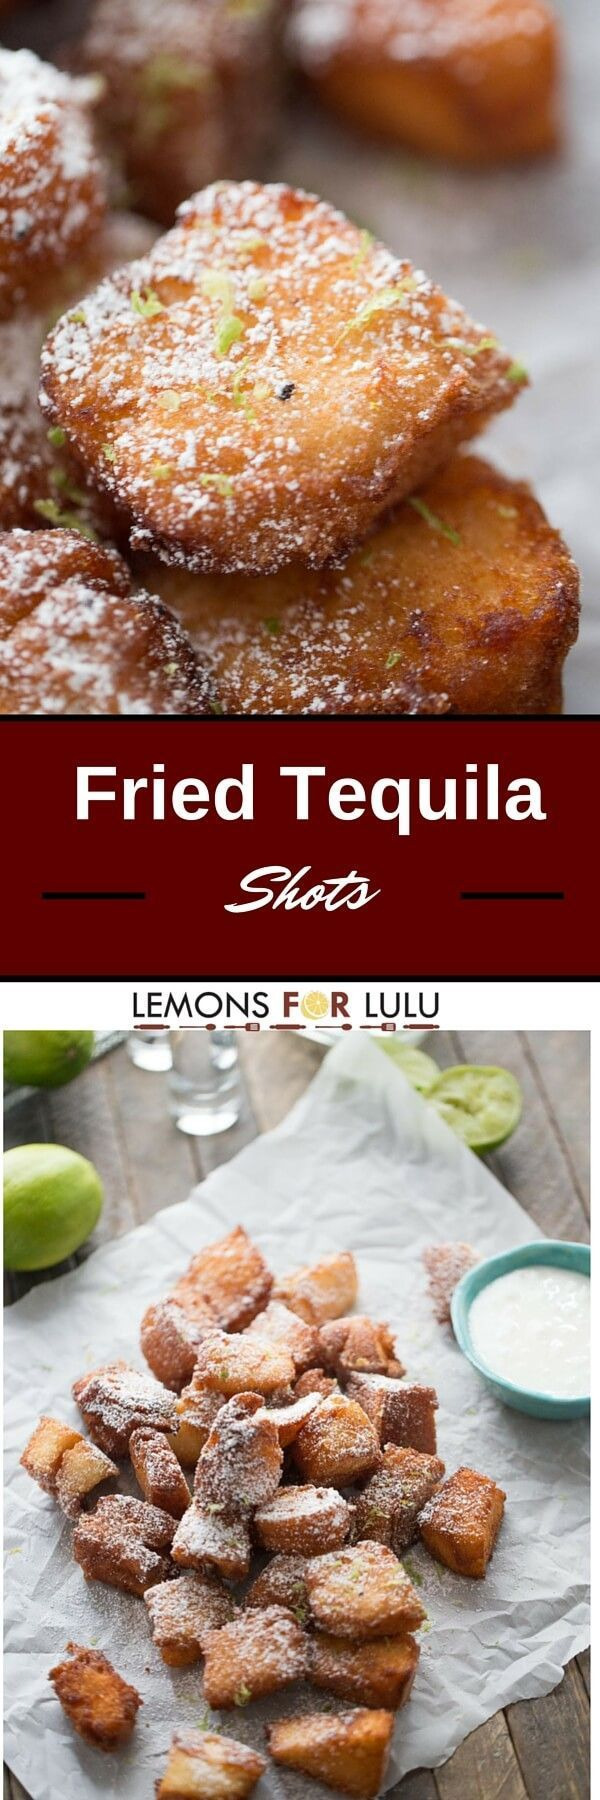 Angel food is cake is dipped in  tequila and then fried just until golden.  These fried tequila shots  are served with fresh lime zest, powdered sugar and a creamy lime dipping sauce; the party just got better!